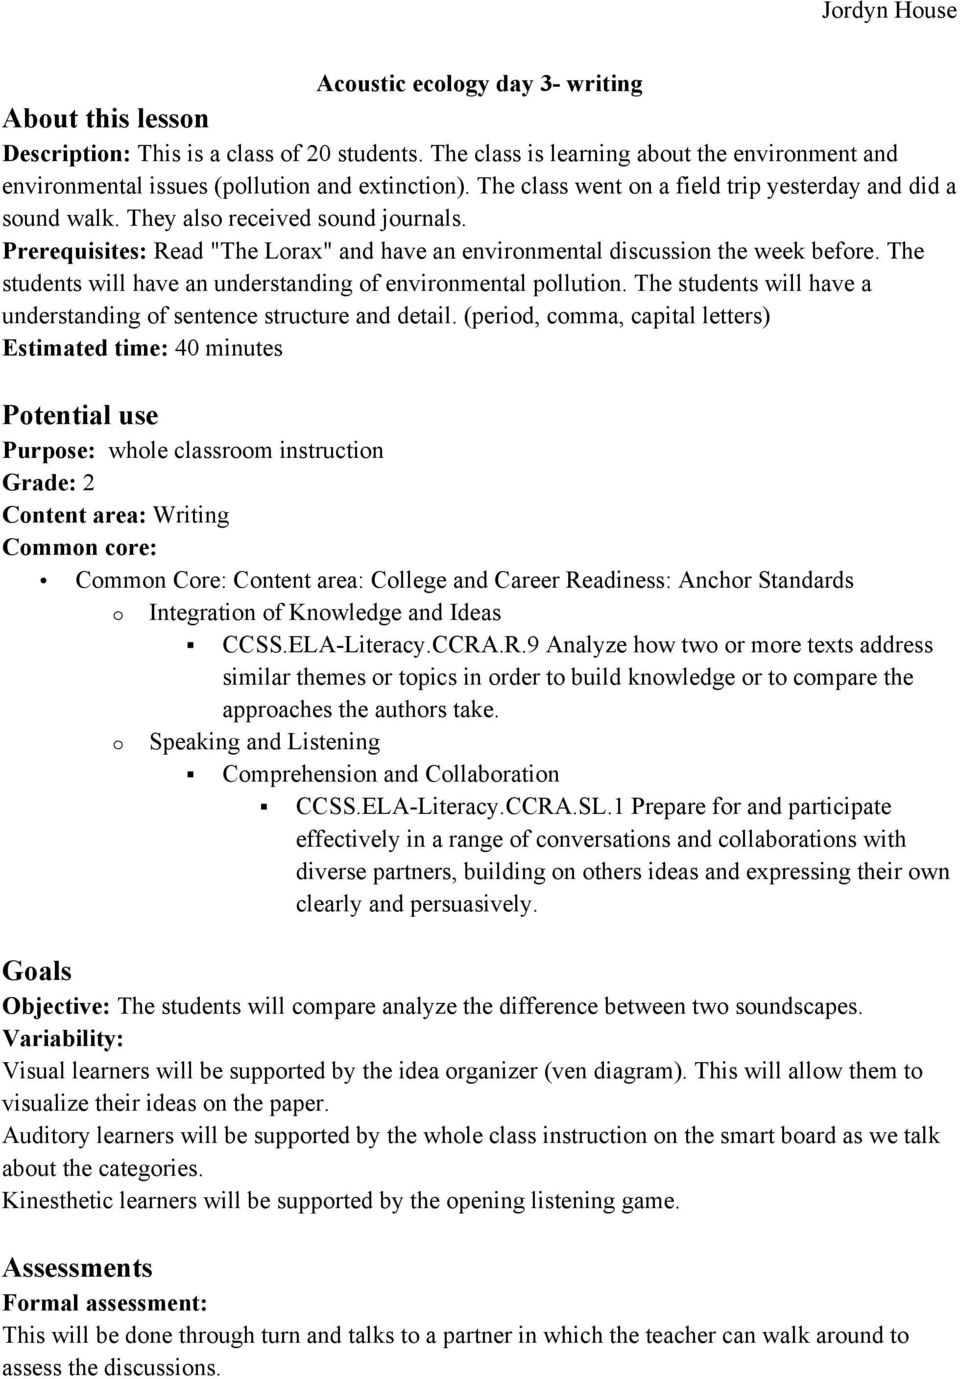 Writing objectie for common assessment essay